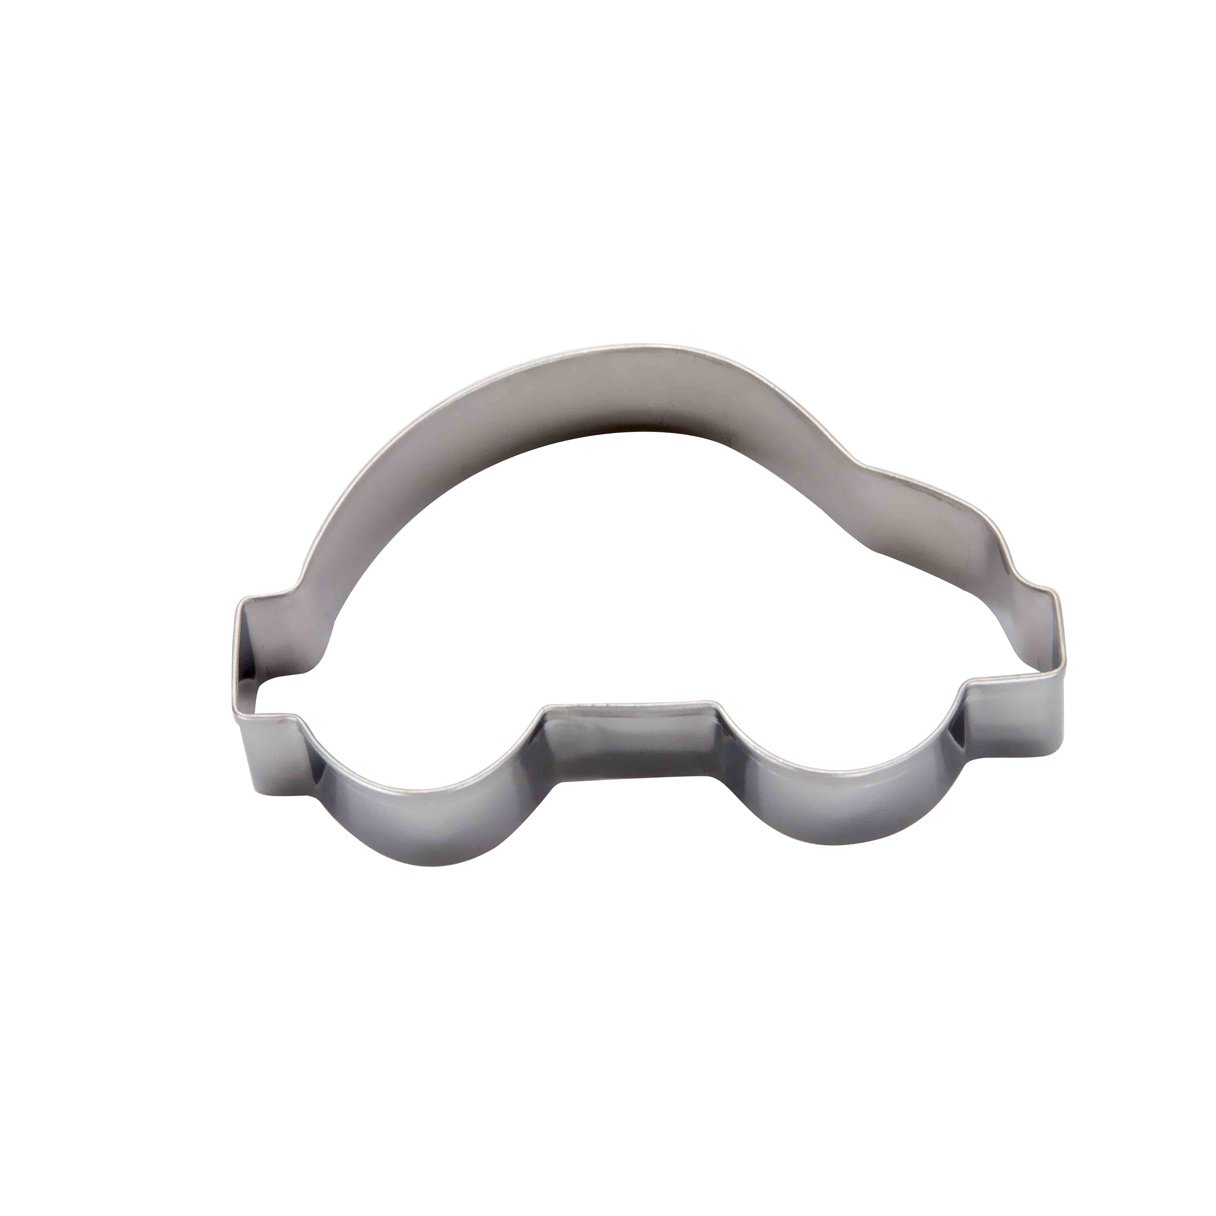 DeColorDulce Car-Shaped Silver-Coloured Stainless-Steel Biscuit Cutter Desconocido M288405